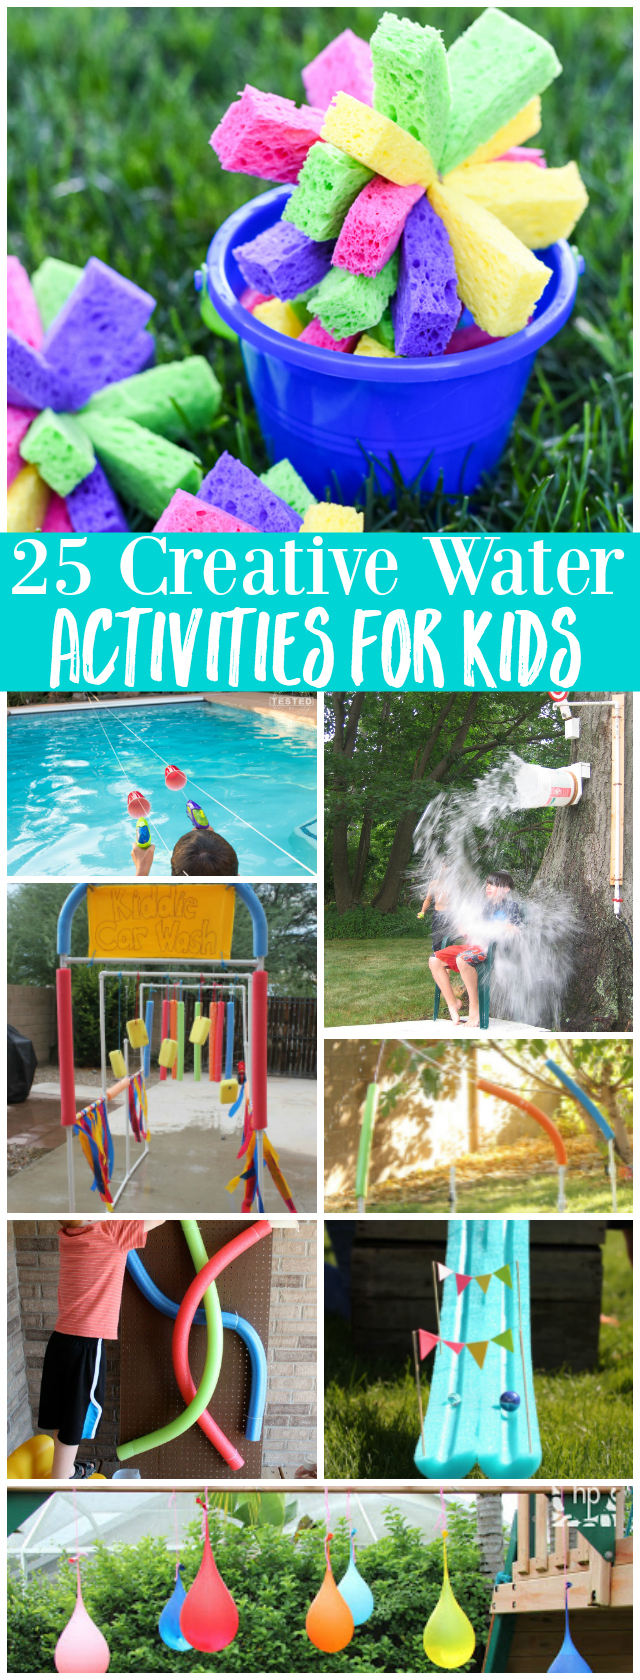 25 Creative Water Activities and Games for Kids - fun Summer boredom buster ideas!